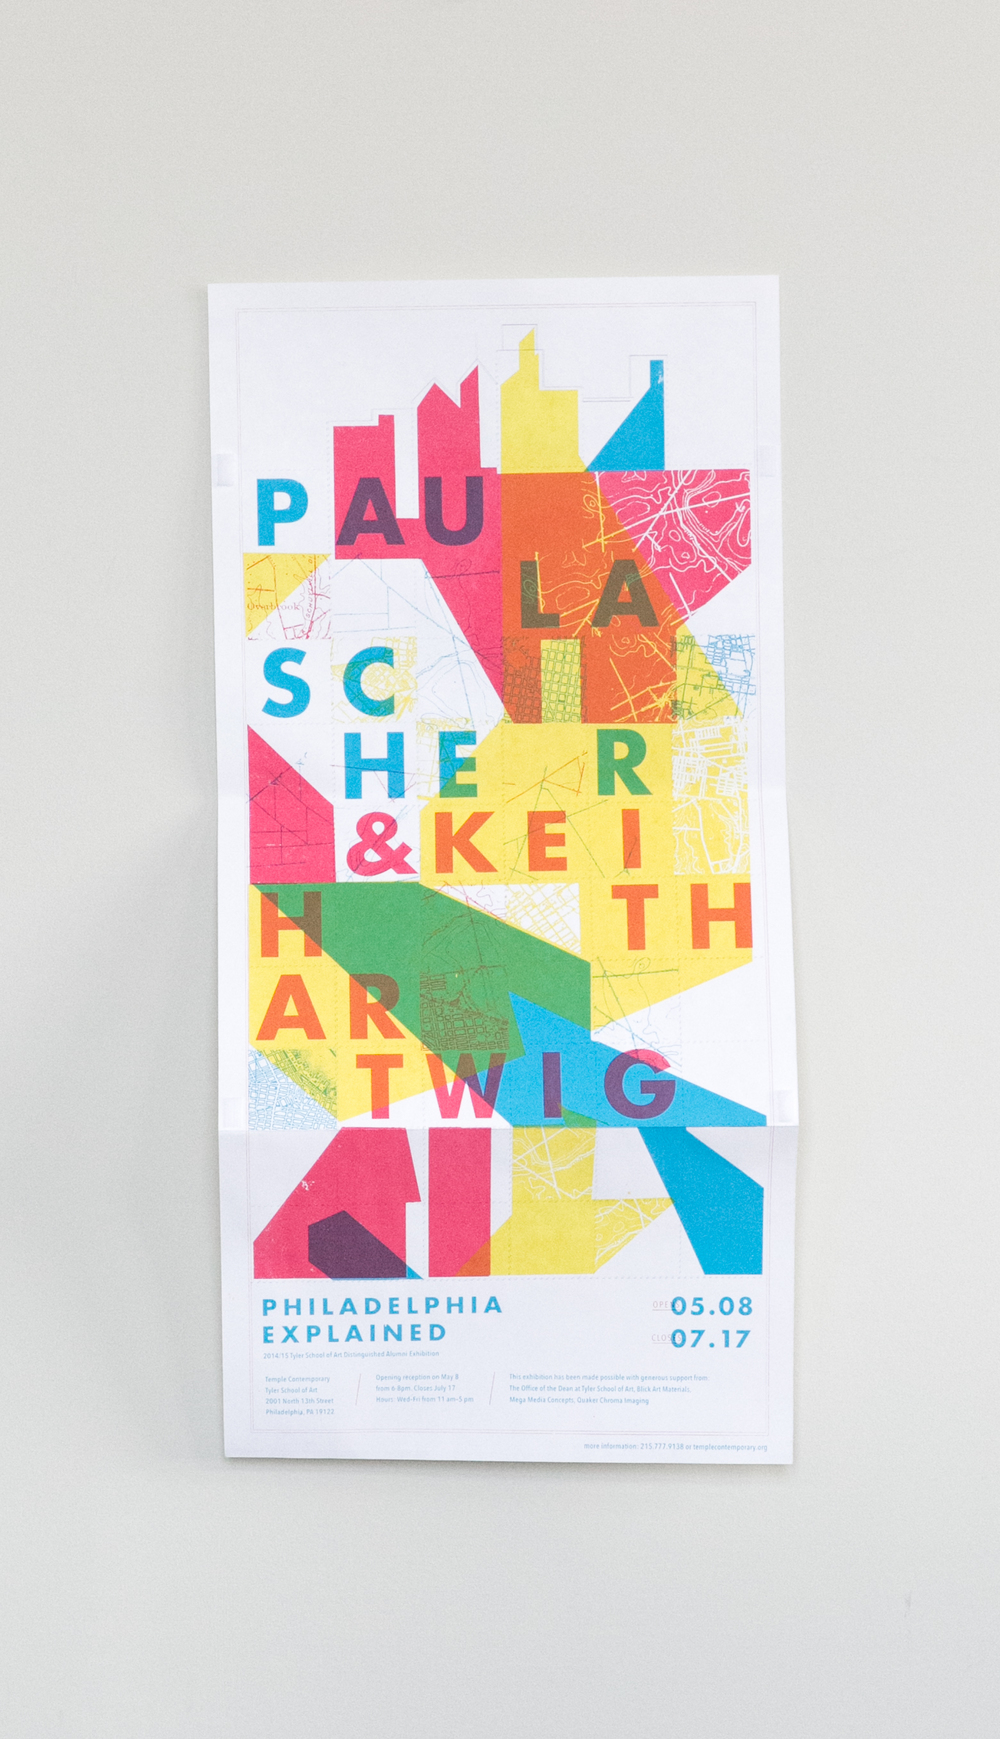 Poster design gallery - The Third Poster Promoted The Opening Of The Show The Entire Gallery Was Wallpapered With A Gigantic Map Of The City The View Was Both Overwhelming And